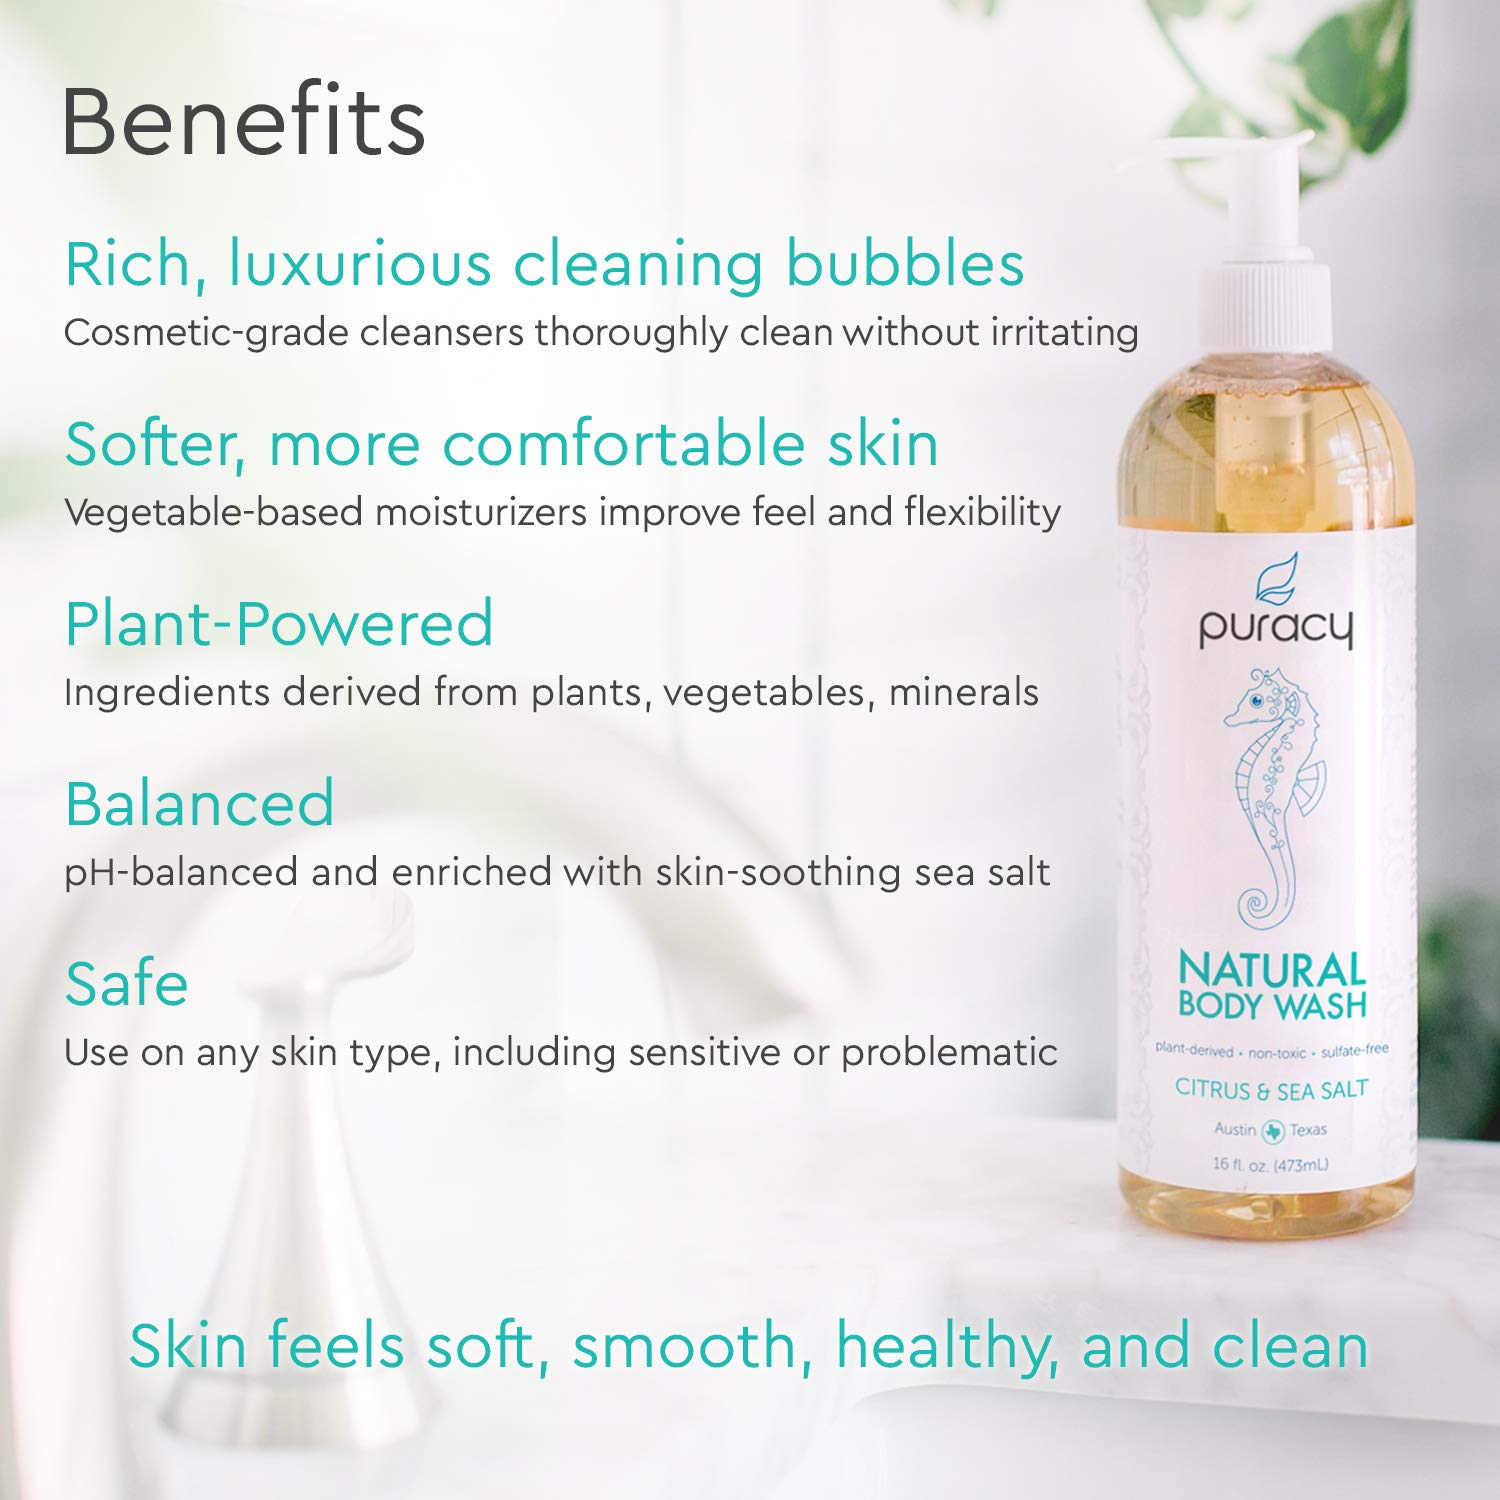 Puracy Natural Body Wash Refill, Sulfate-Free Shower Gel Daily Cleanser, Citrus & Sea Salt, 64 Ounce by Puracy (Image #2)